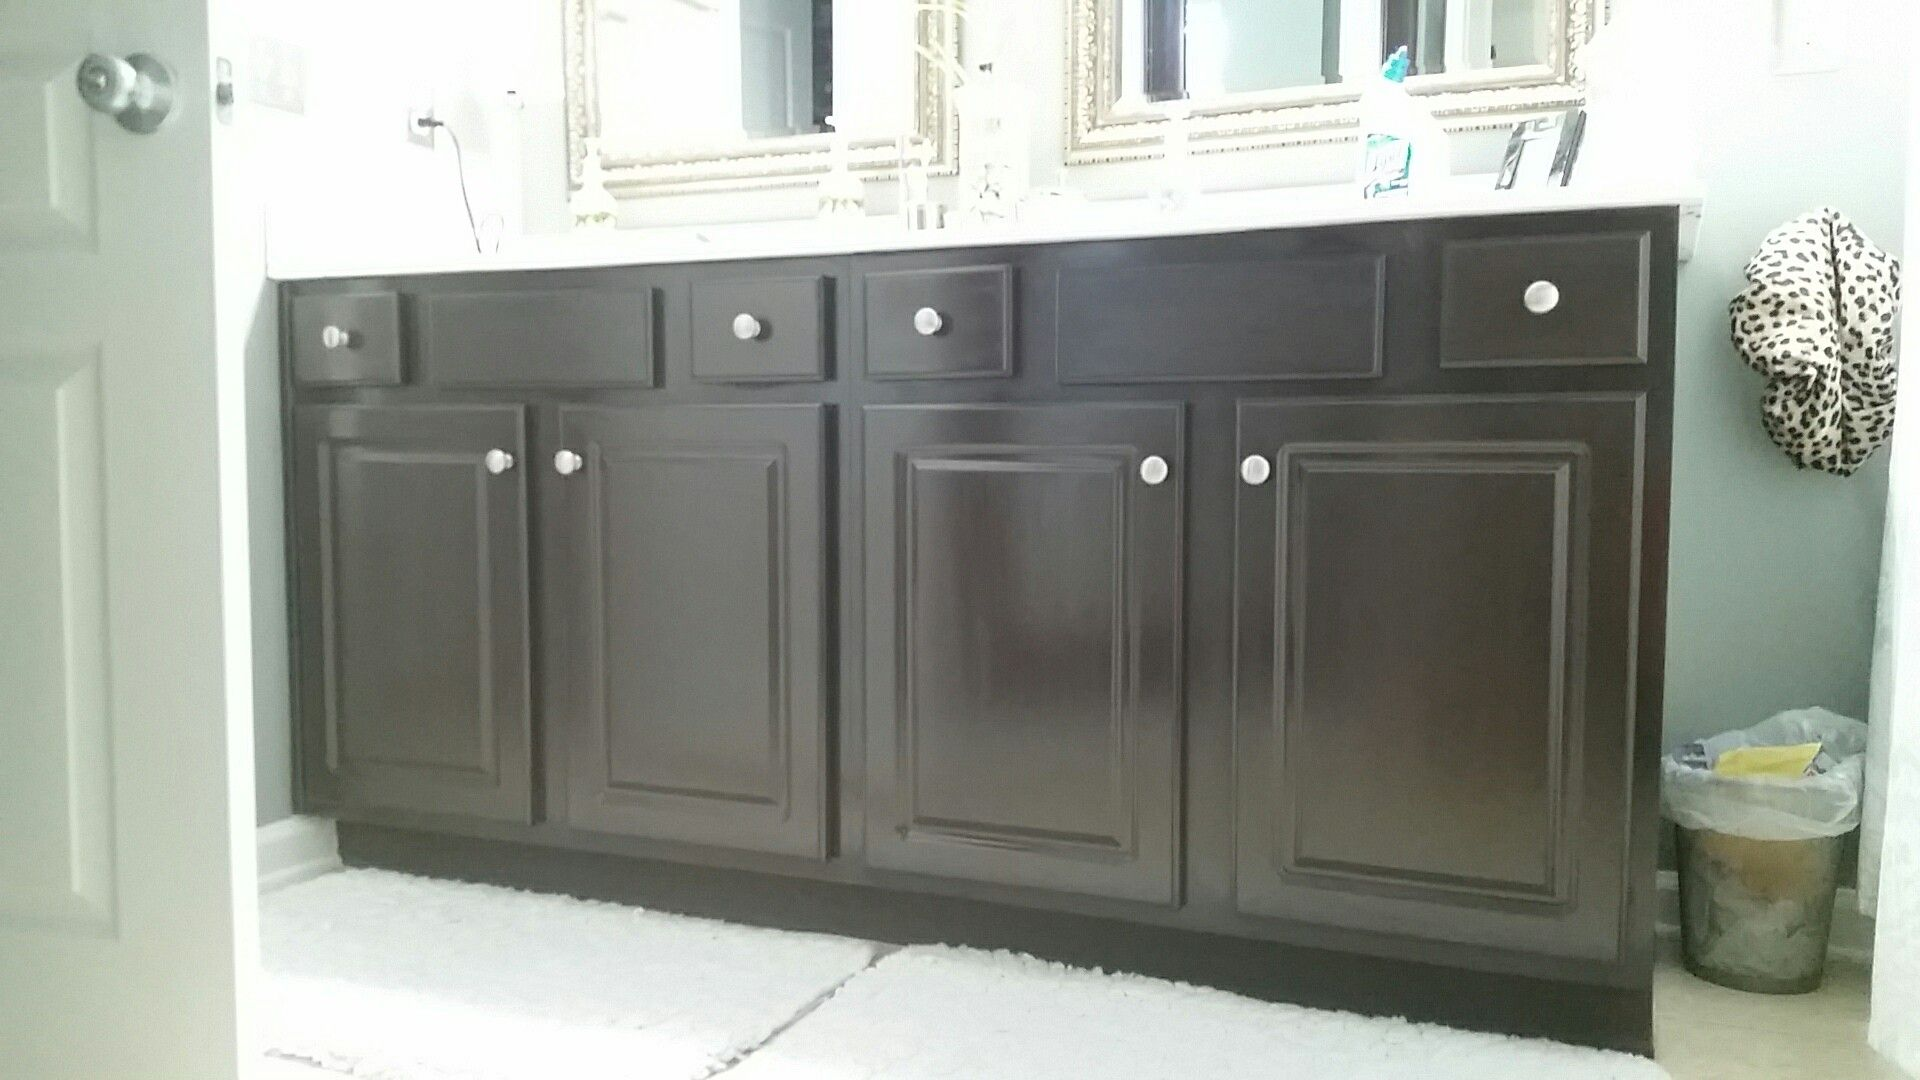 Dinorah Ruffin Bathroom Cabinets Refinished With Chalk Paint And Polyurethane Instead Of Wax Due To The Area Refinishing Cabinets Furniture Bathroom Cabinets